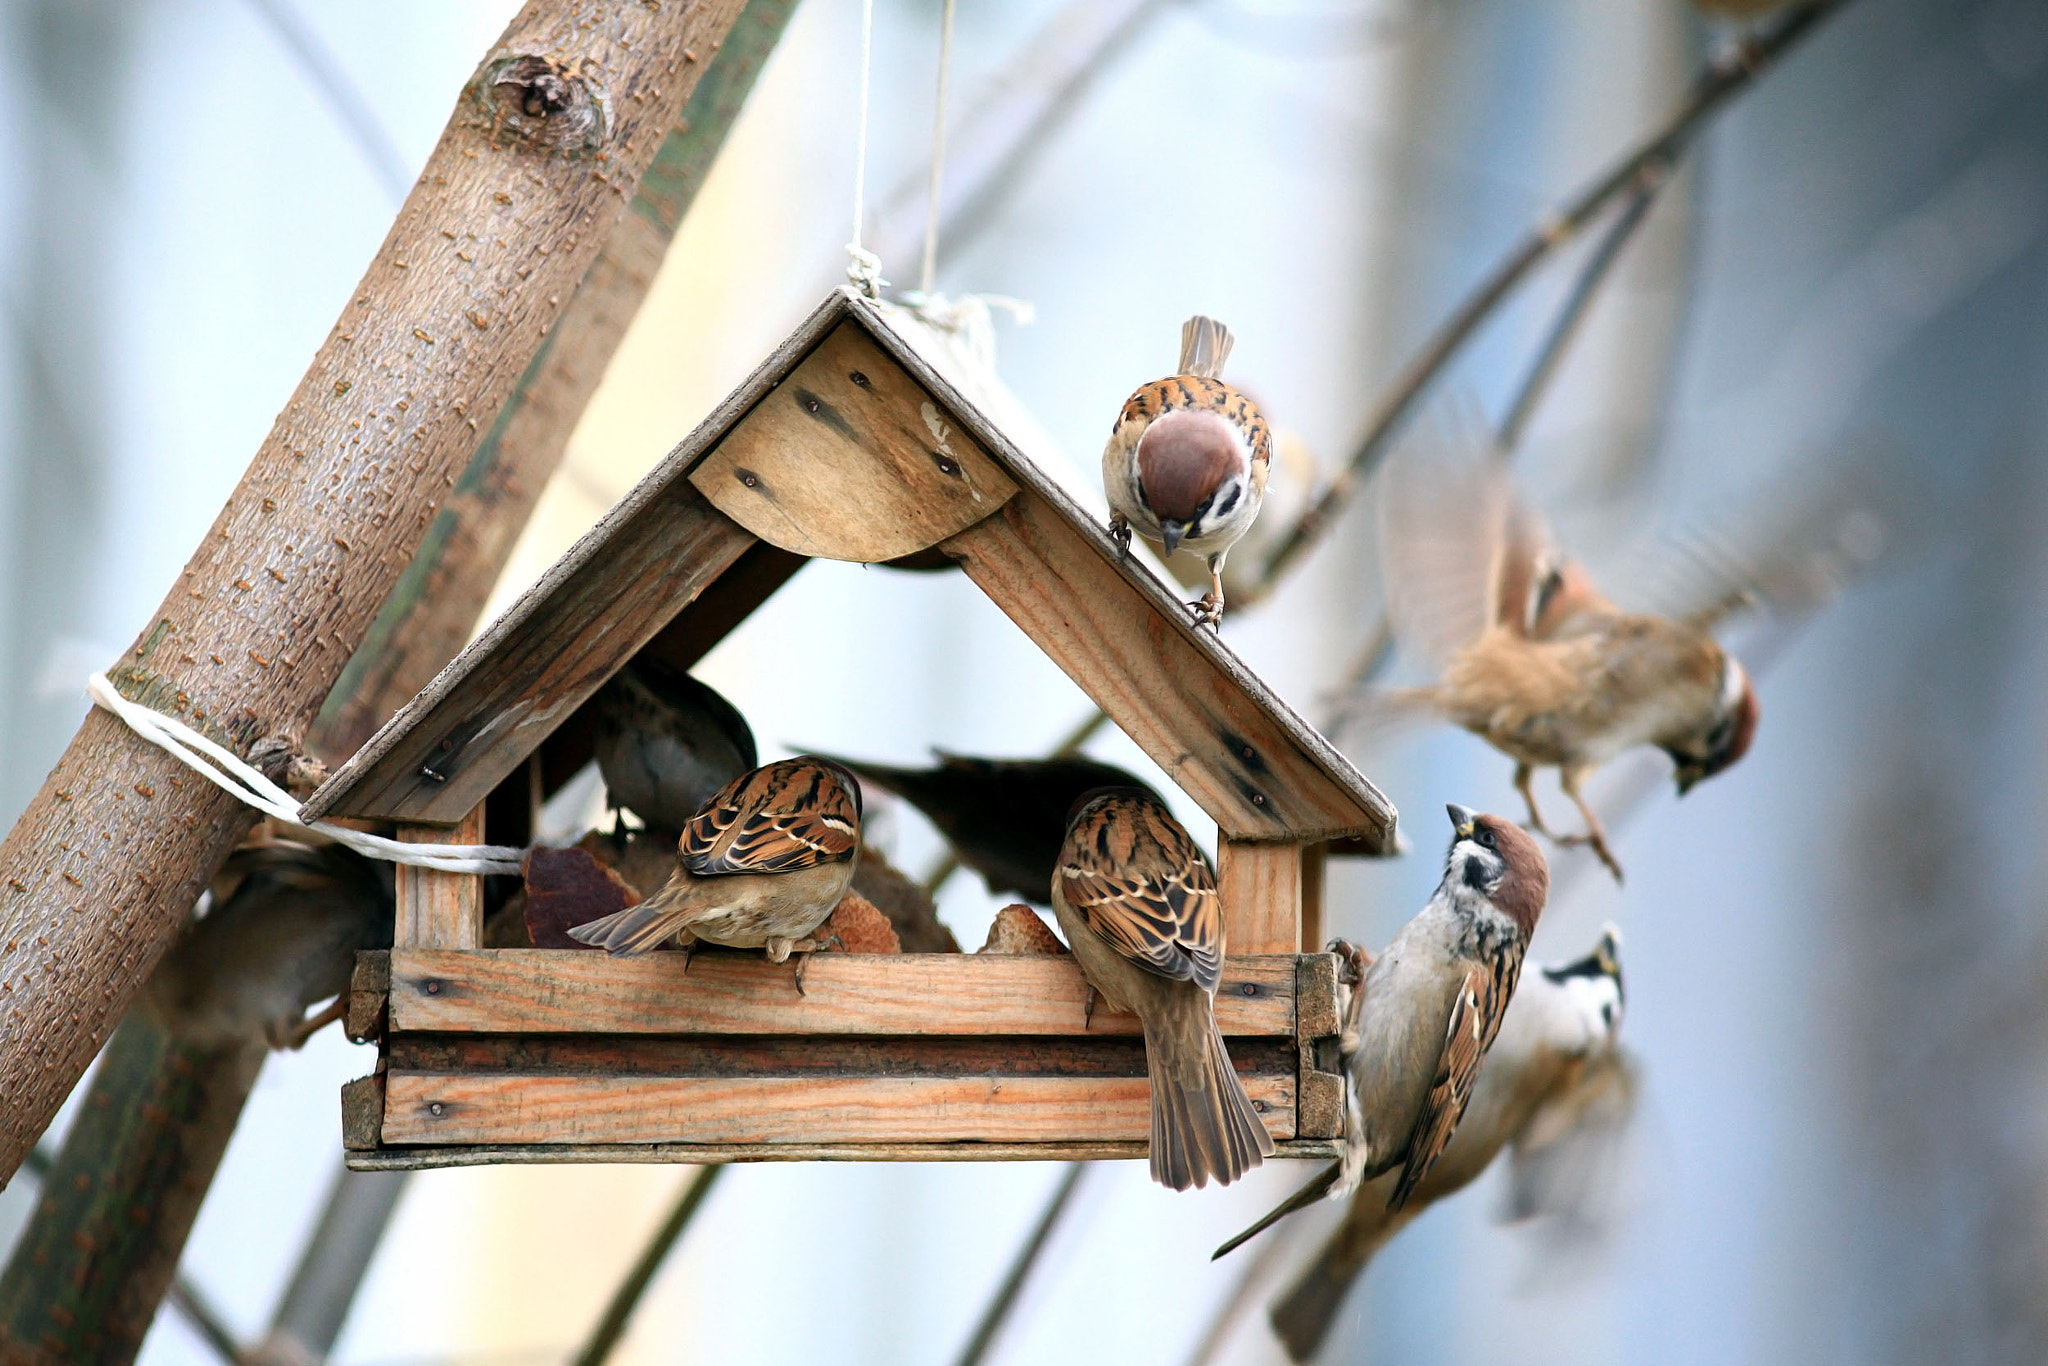 Photograph Sparrows - noisy apartment by Kichigin Sergey on 500px